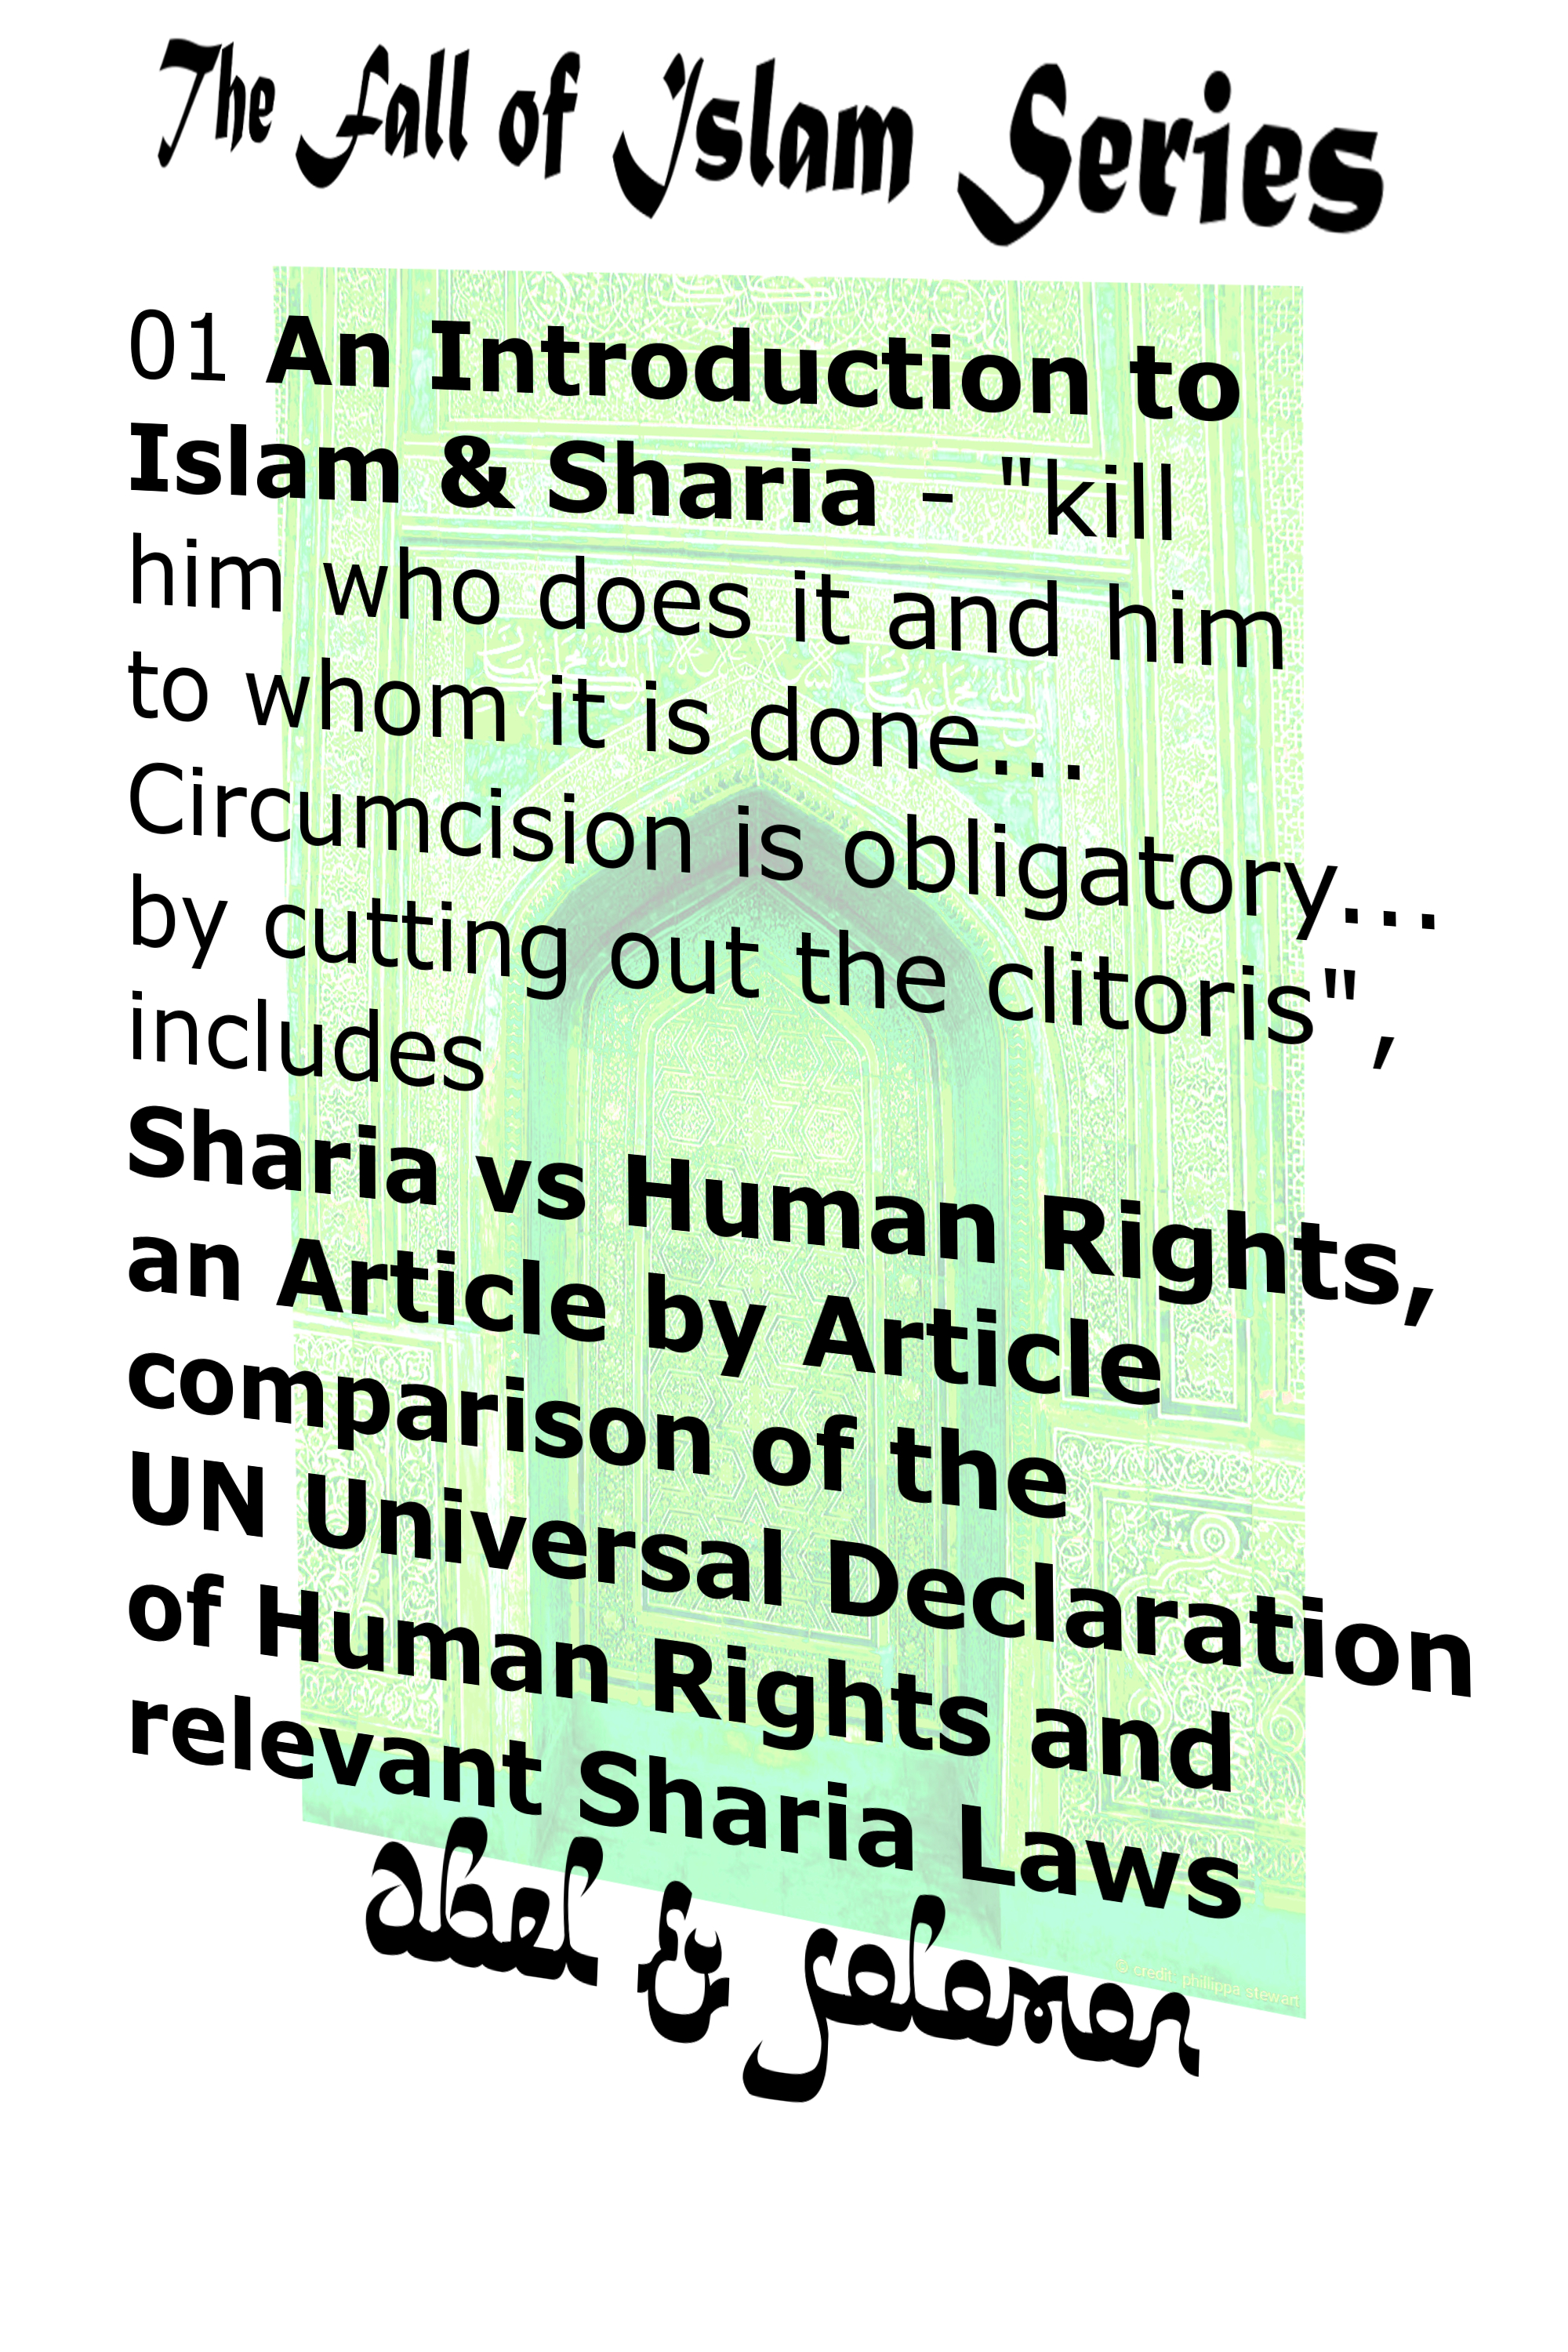 An Introduction to Islam & Sharia